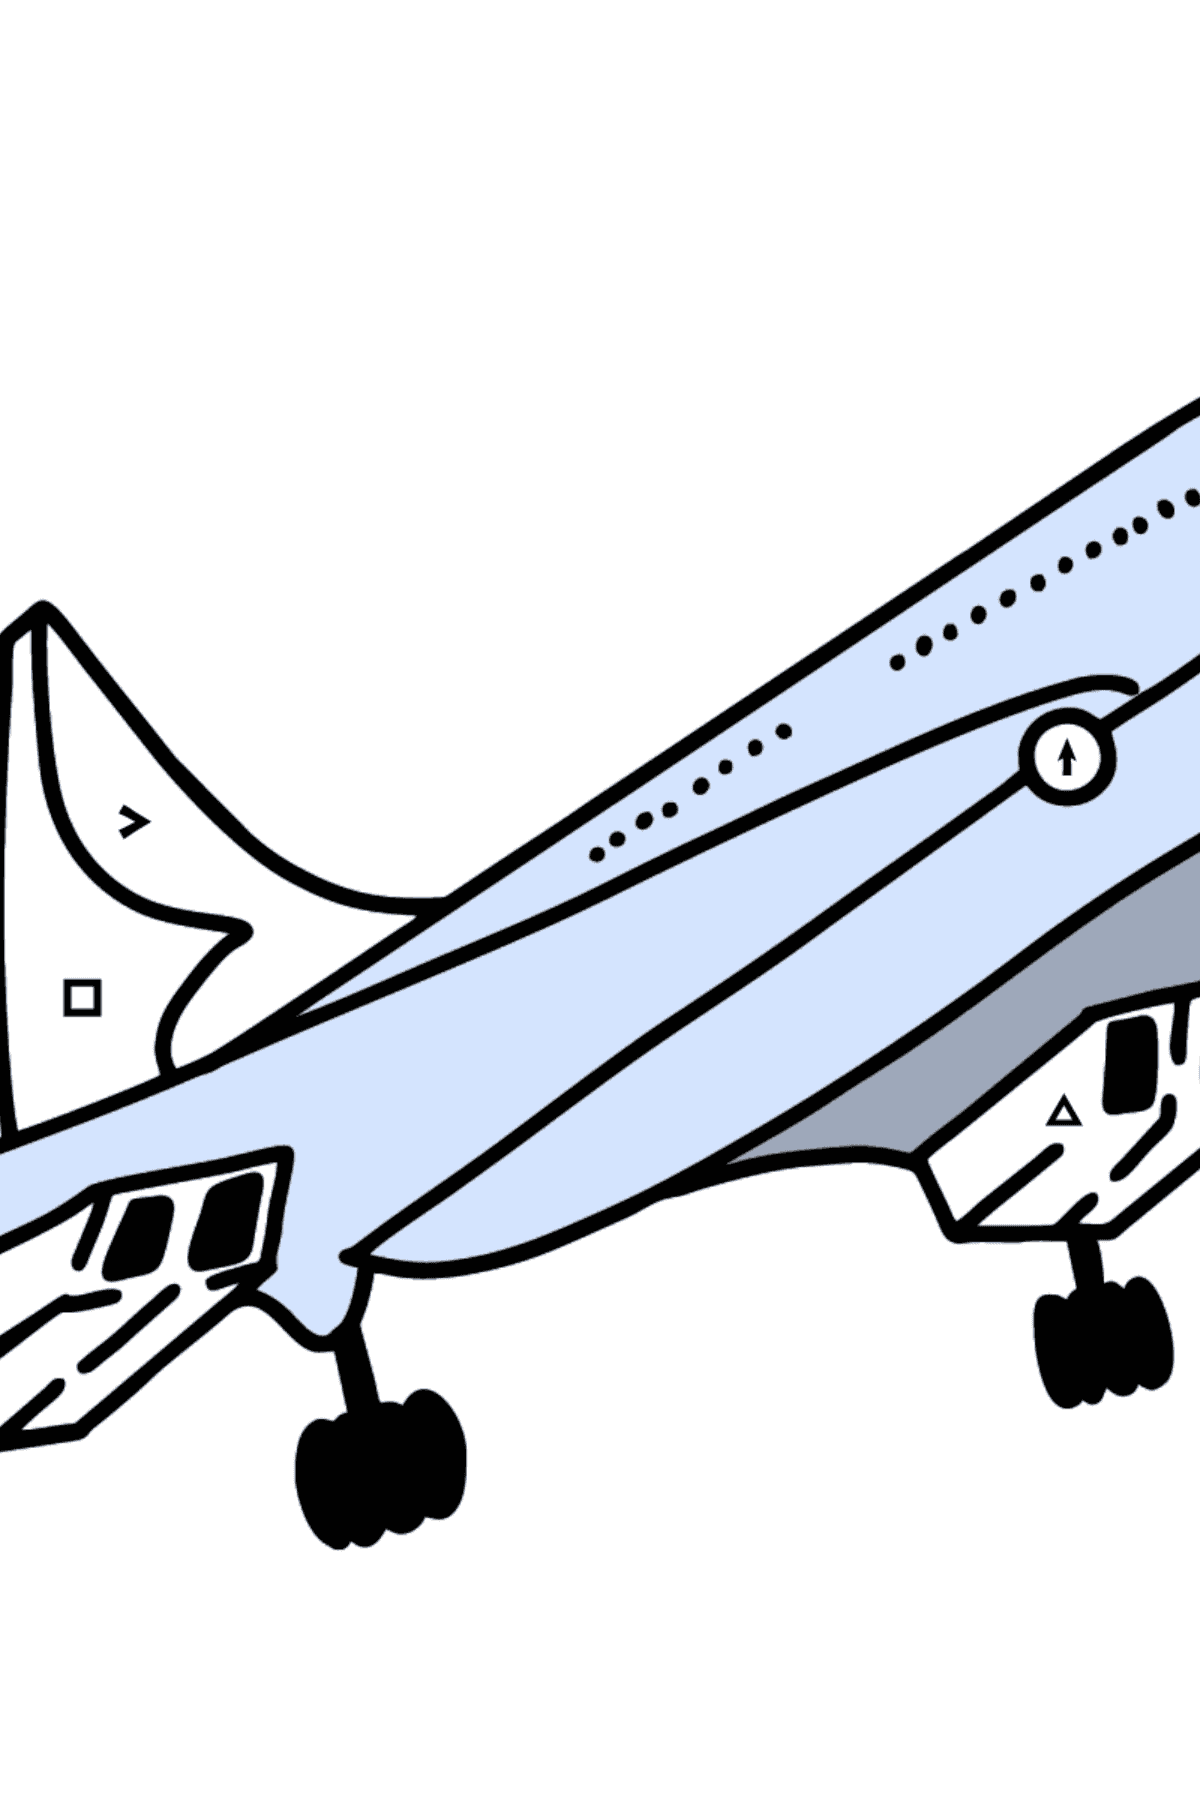 Concorde coloring page - Coloring by Symbols for Kids